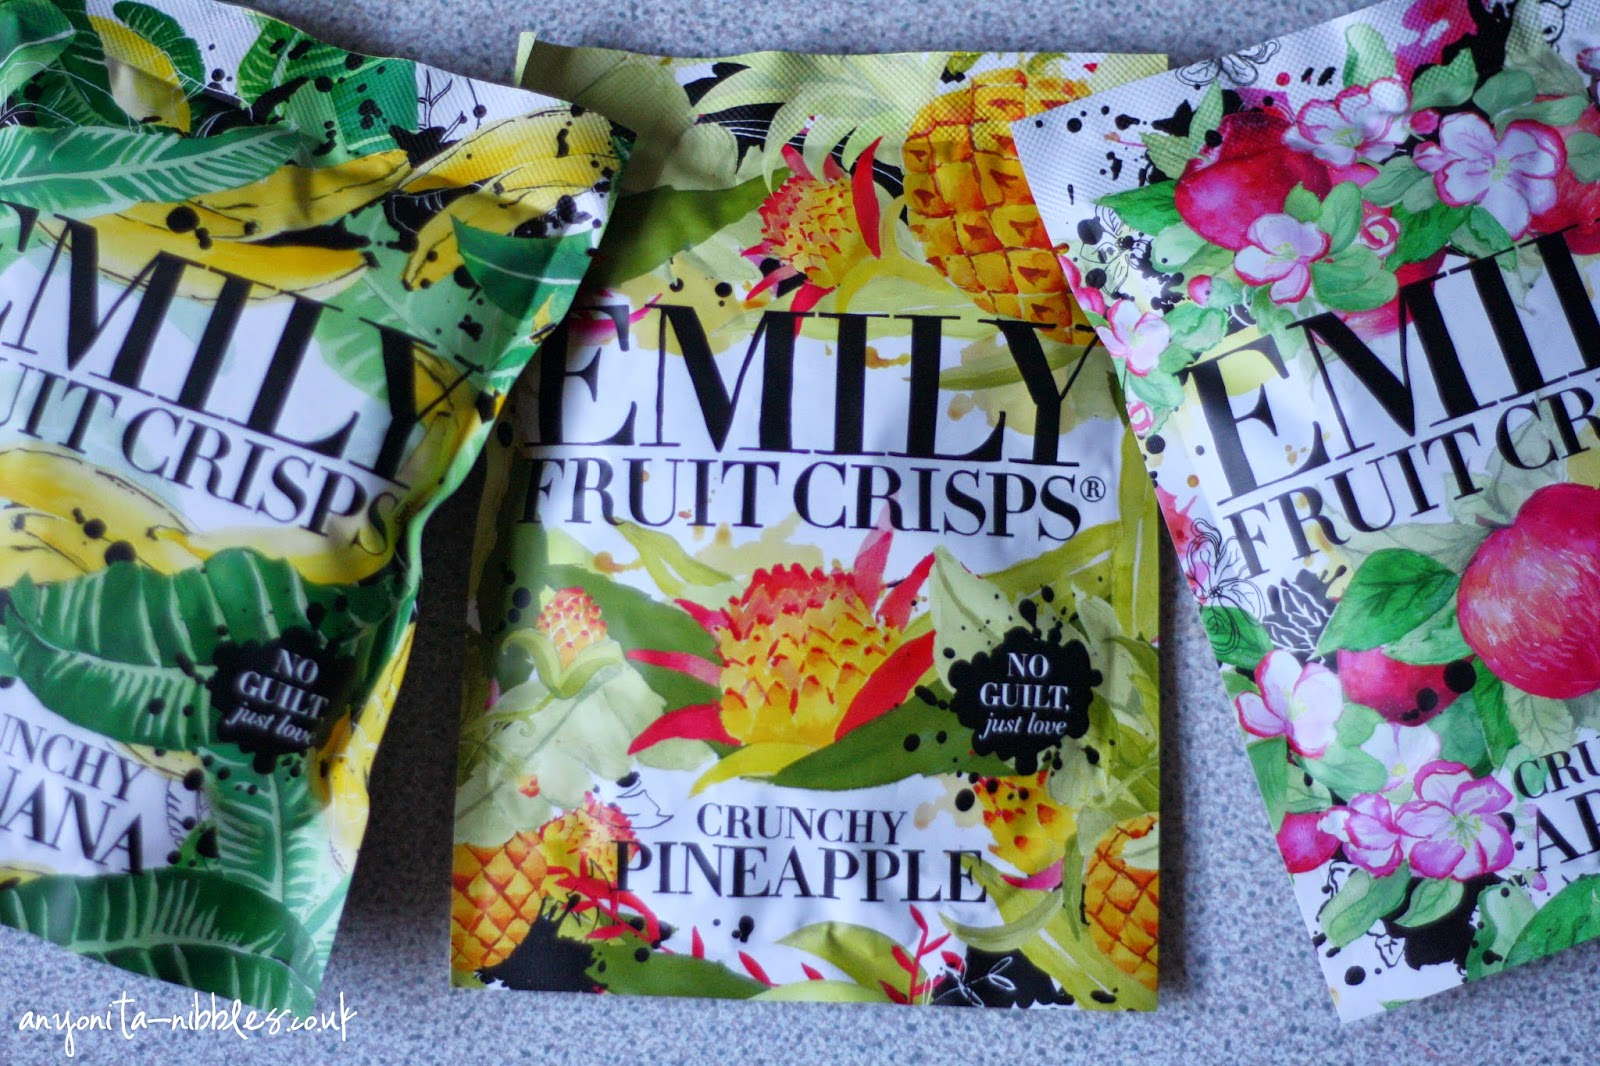 Range of Emily FRuit Crisps from Anyonita-nibbles.co.uk